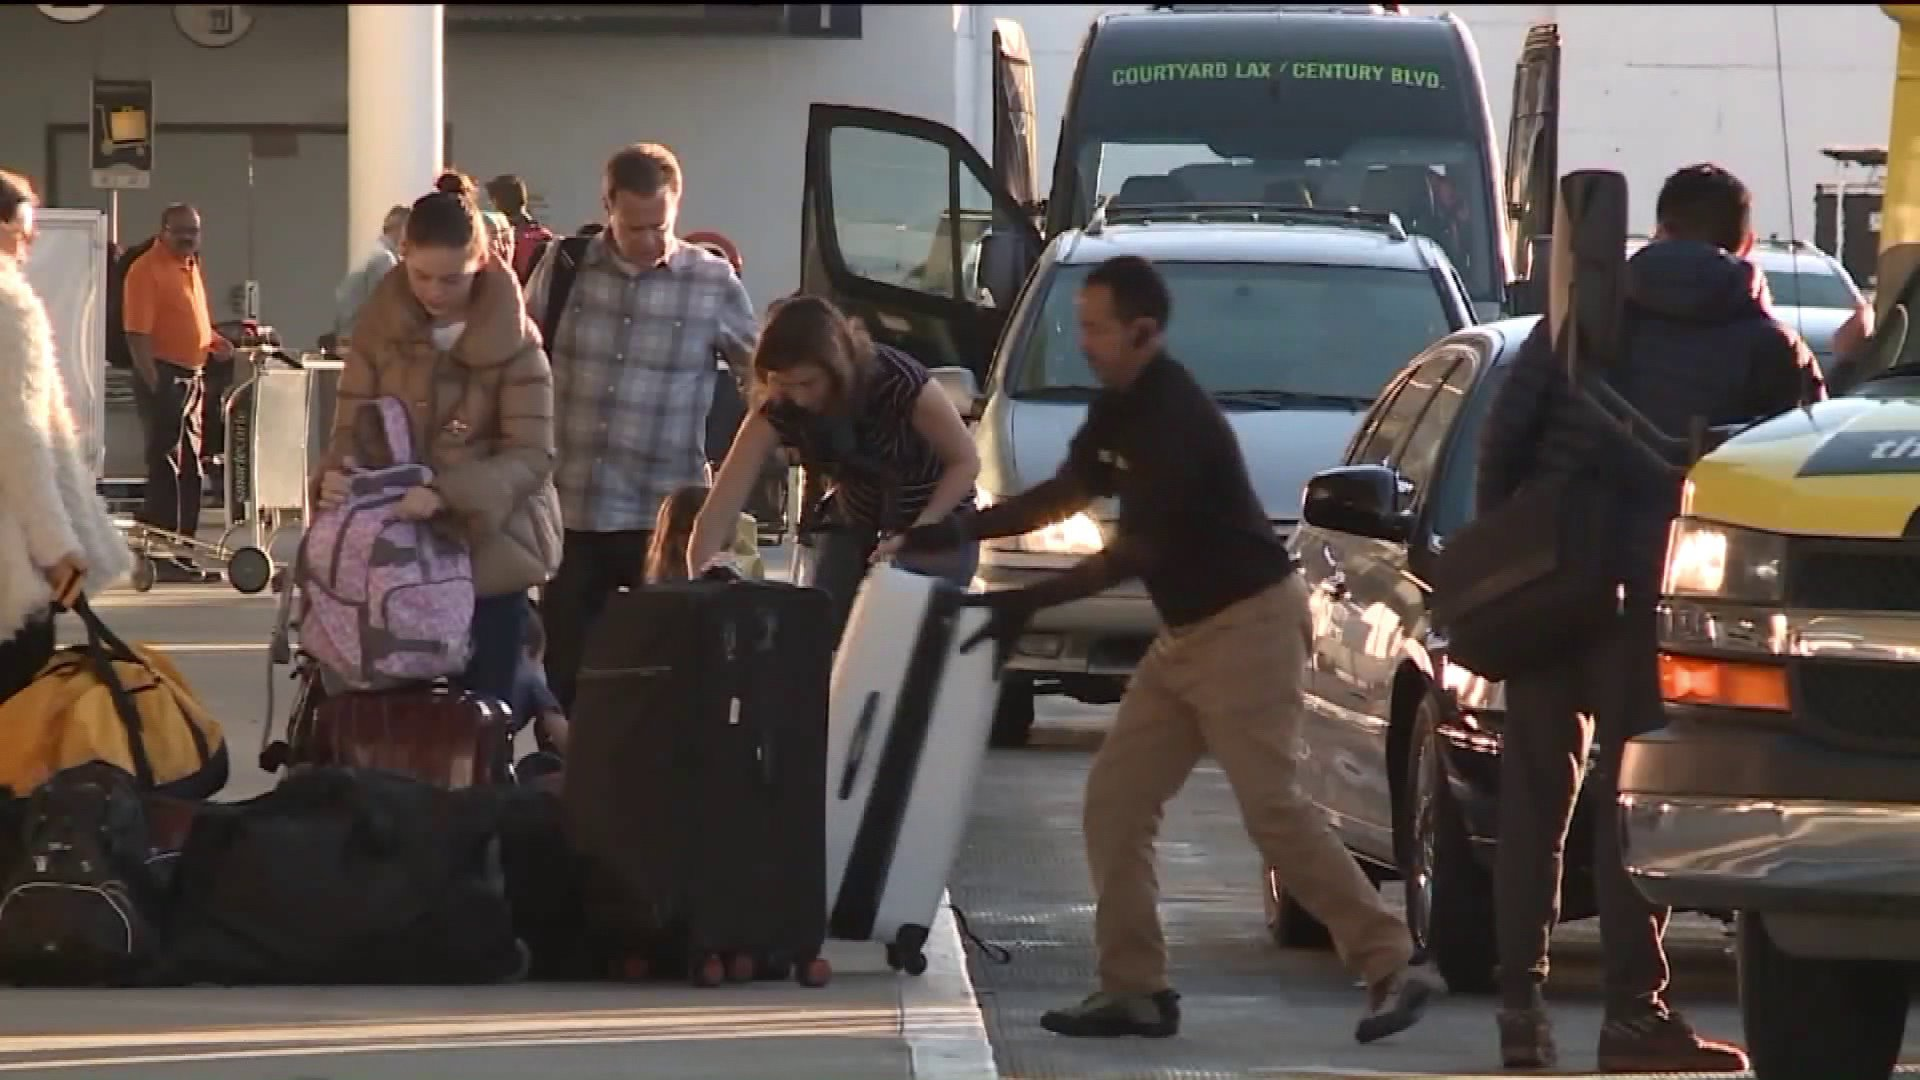 Holiday travelers head out of Los Angeles from LAX on Dec. 26, 2018.